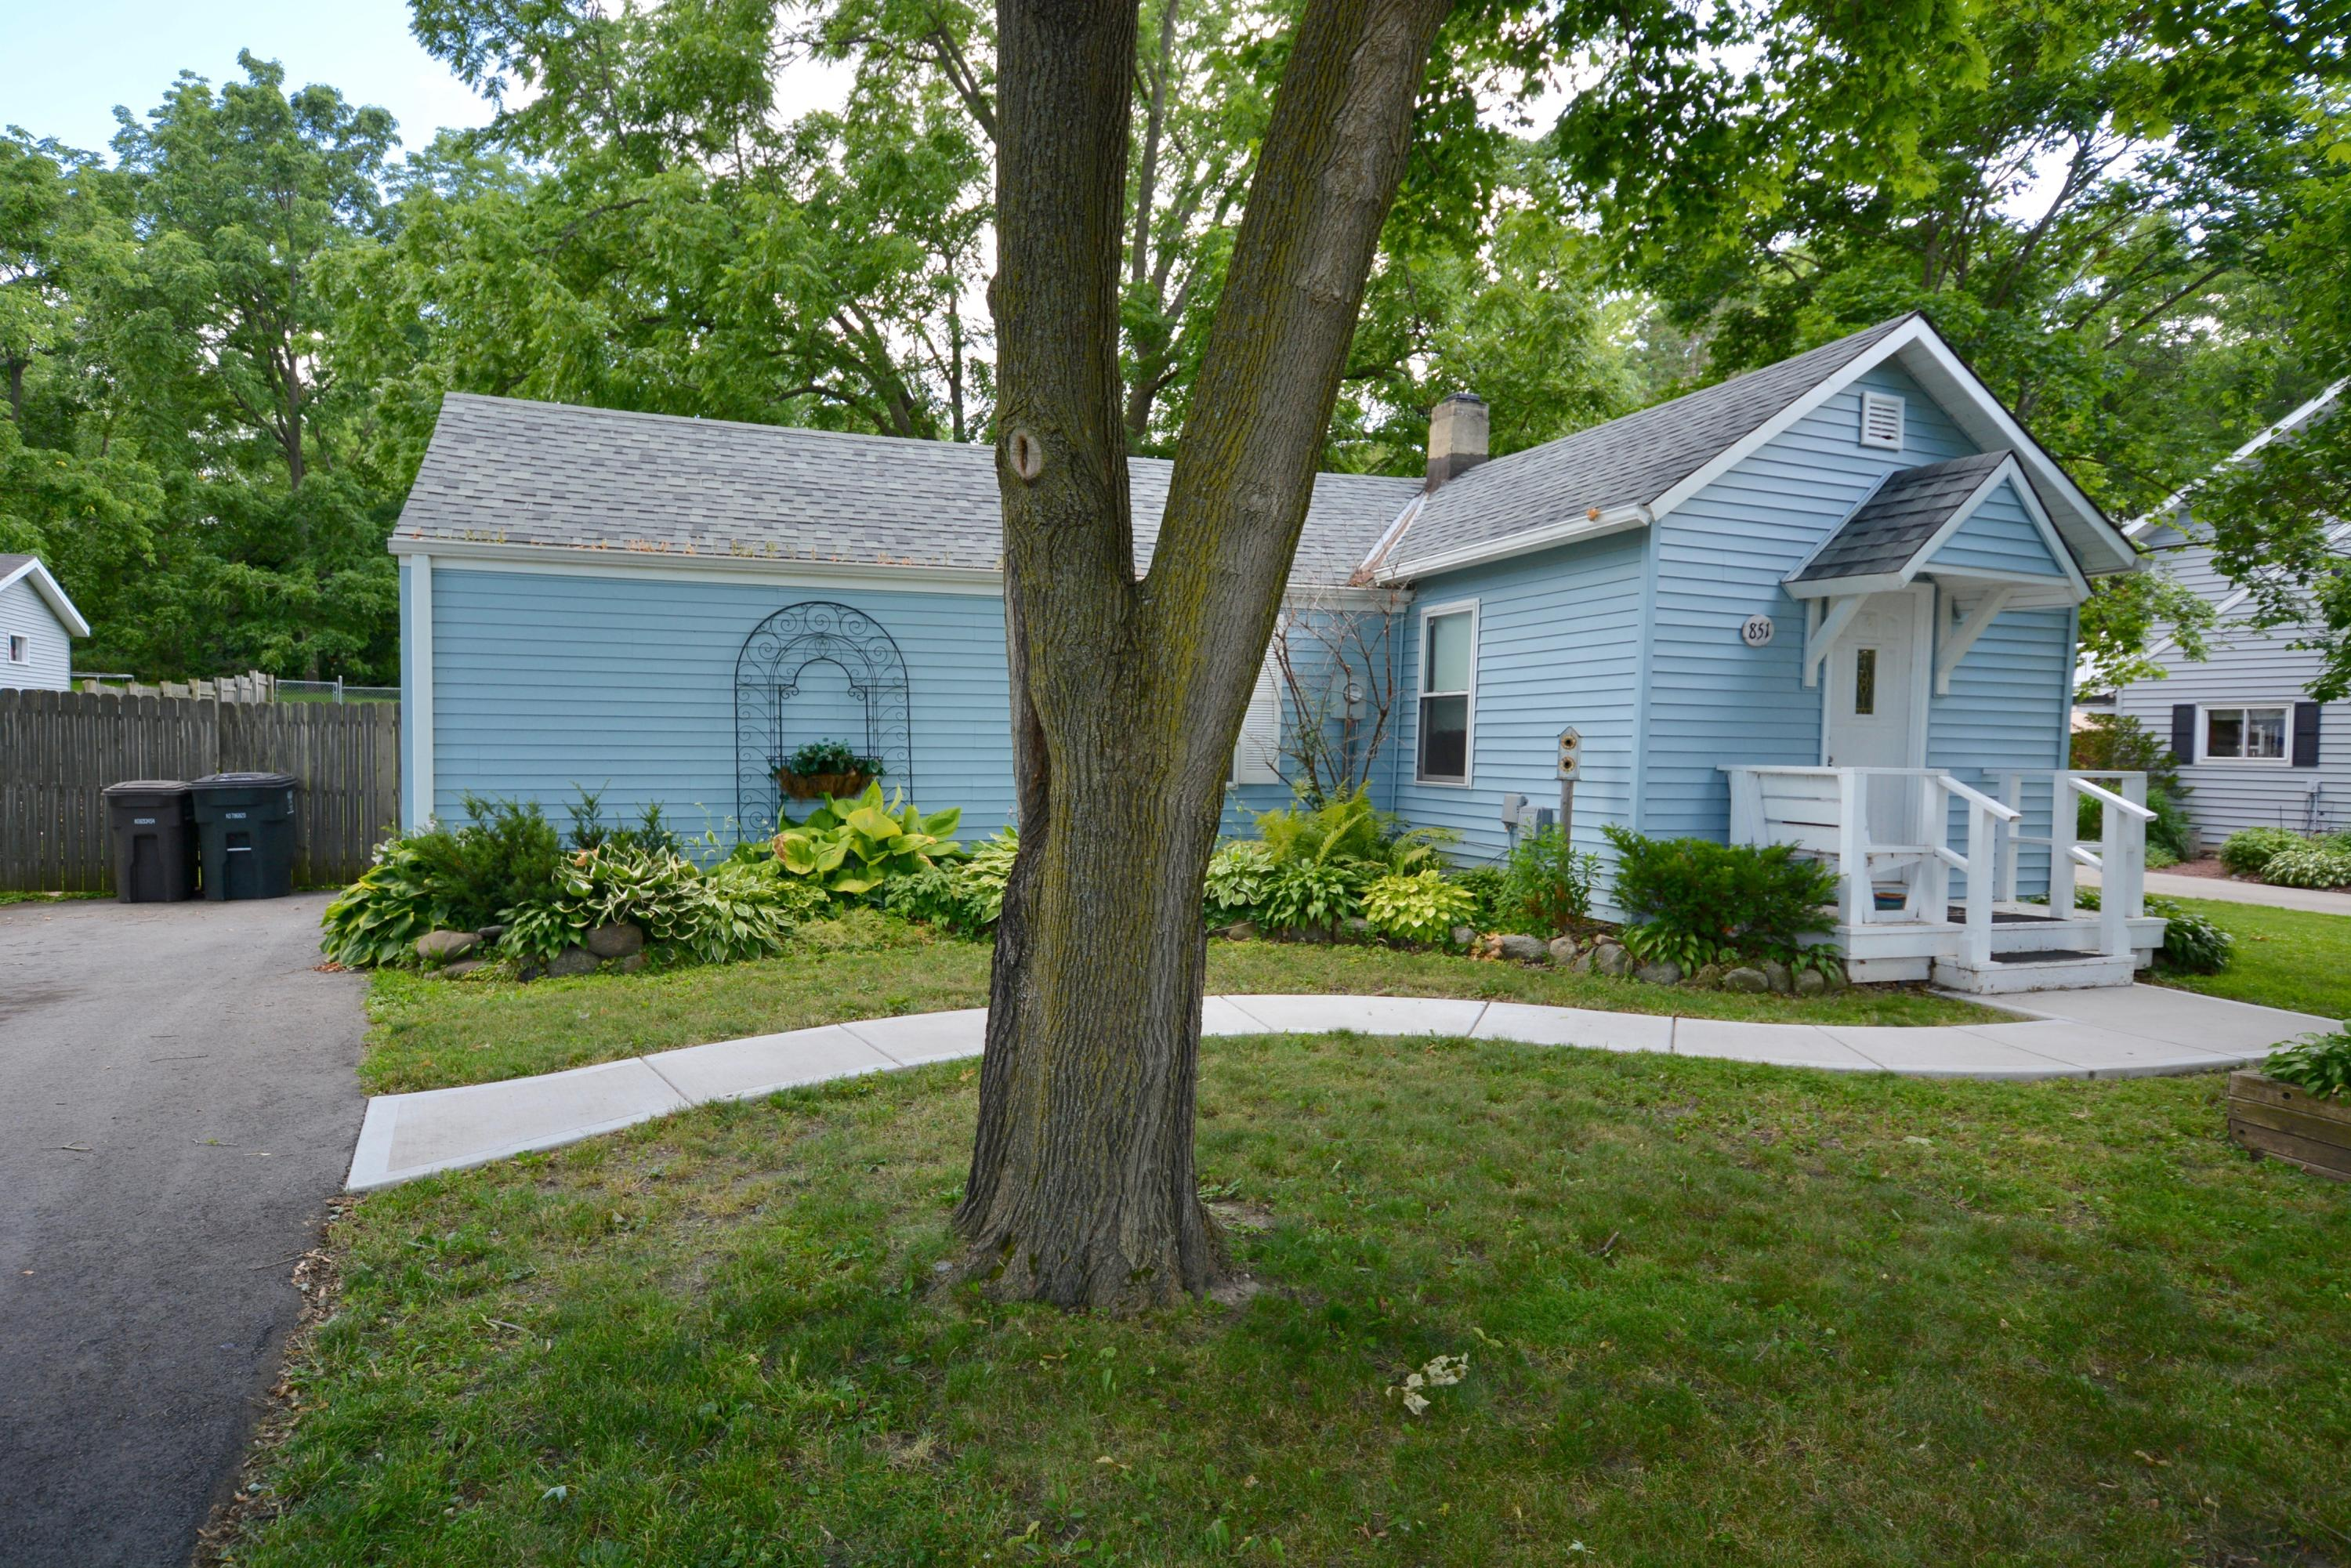 851 Armour Rd, Oconomowoc, Wisconsin 53066, 2 Bedrooms Bedrooms, 5 Rooms Rooms,1 BathroomBathrooms,Single-Family,For Sale,Armour Rd,1685761